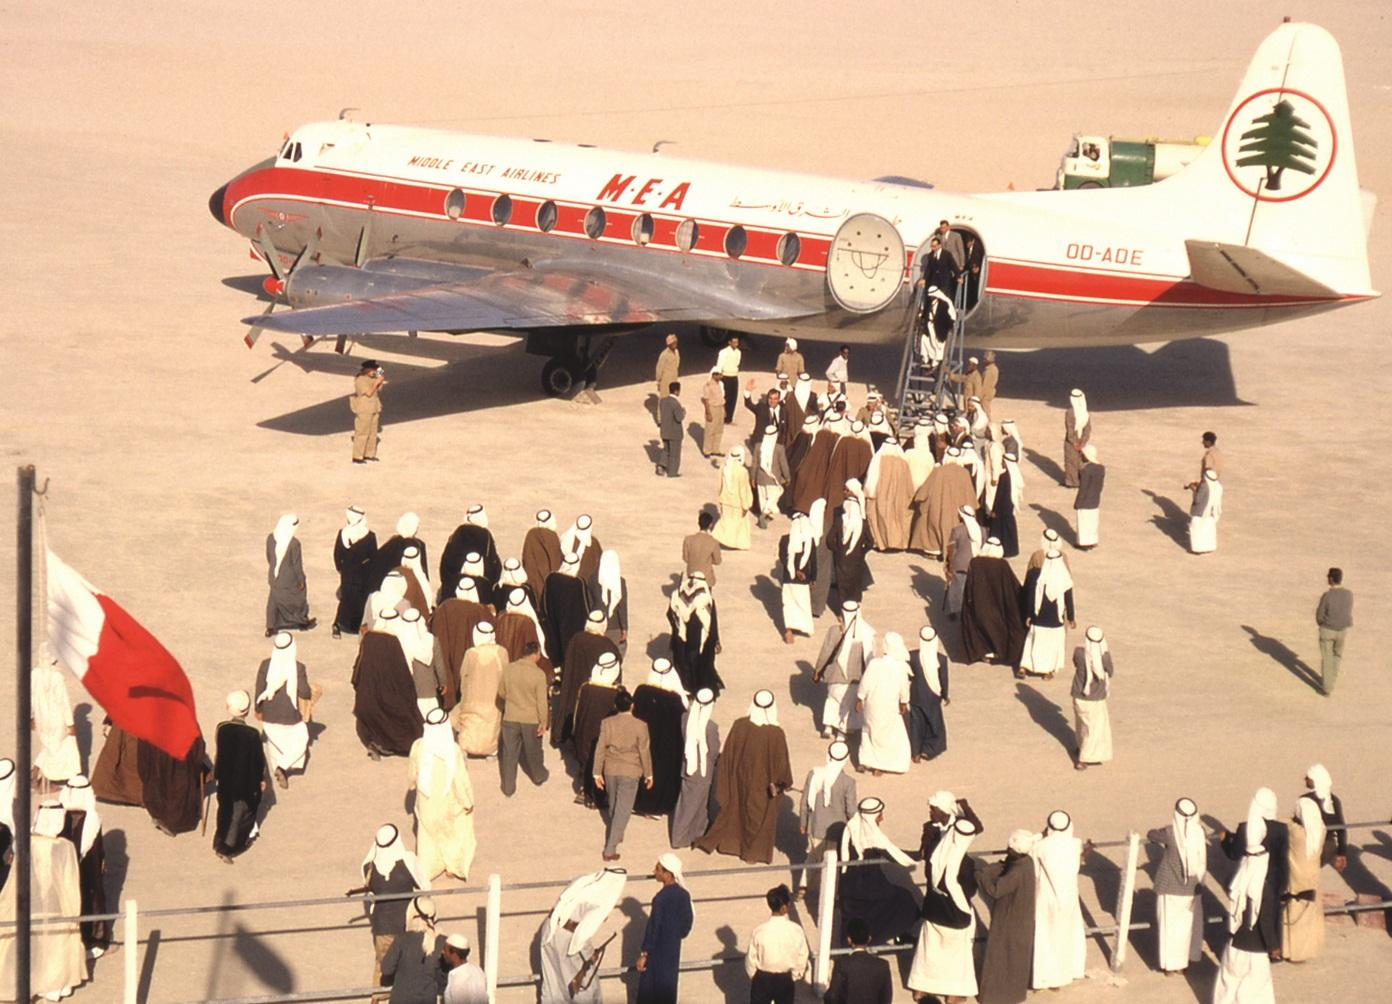 Dubai International Airport 60 Years Old